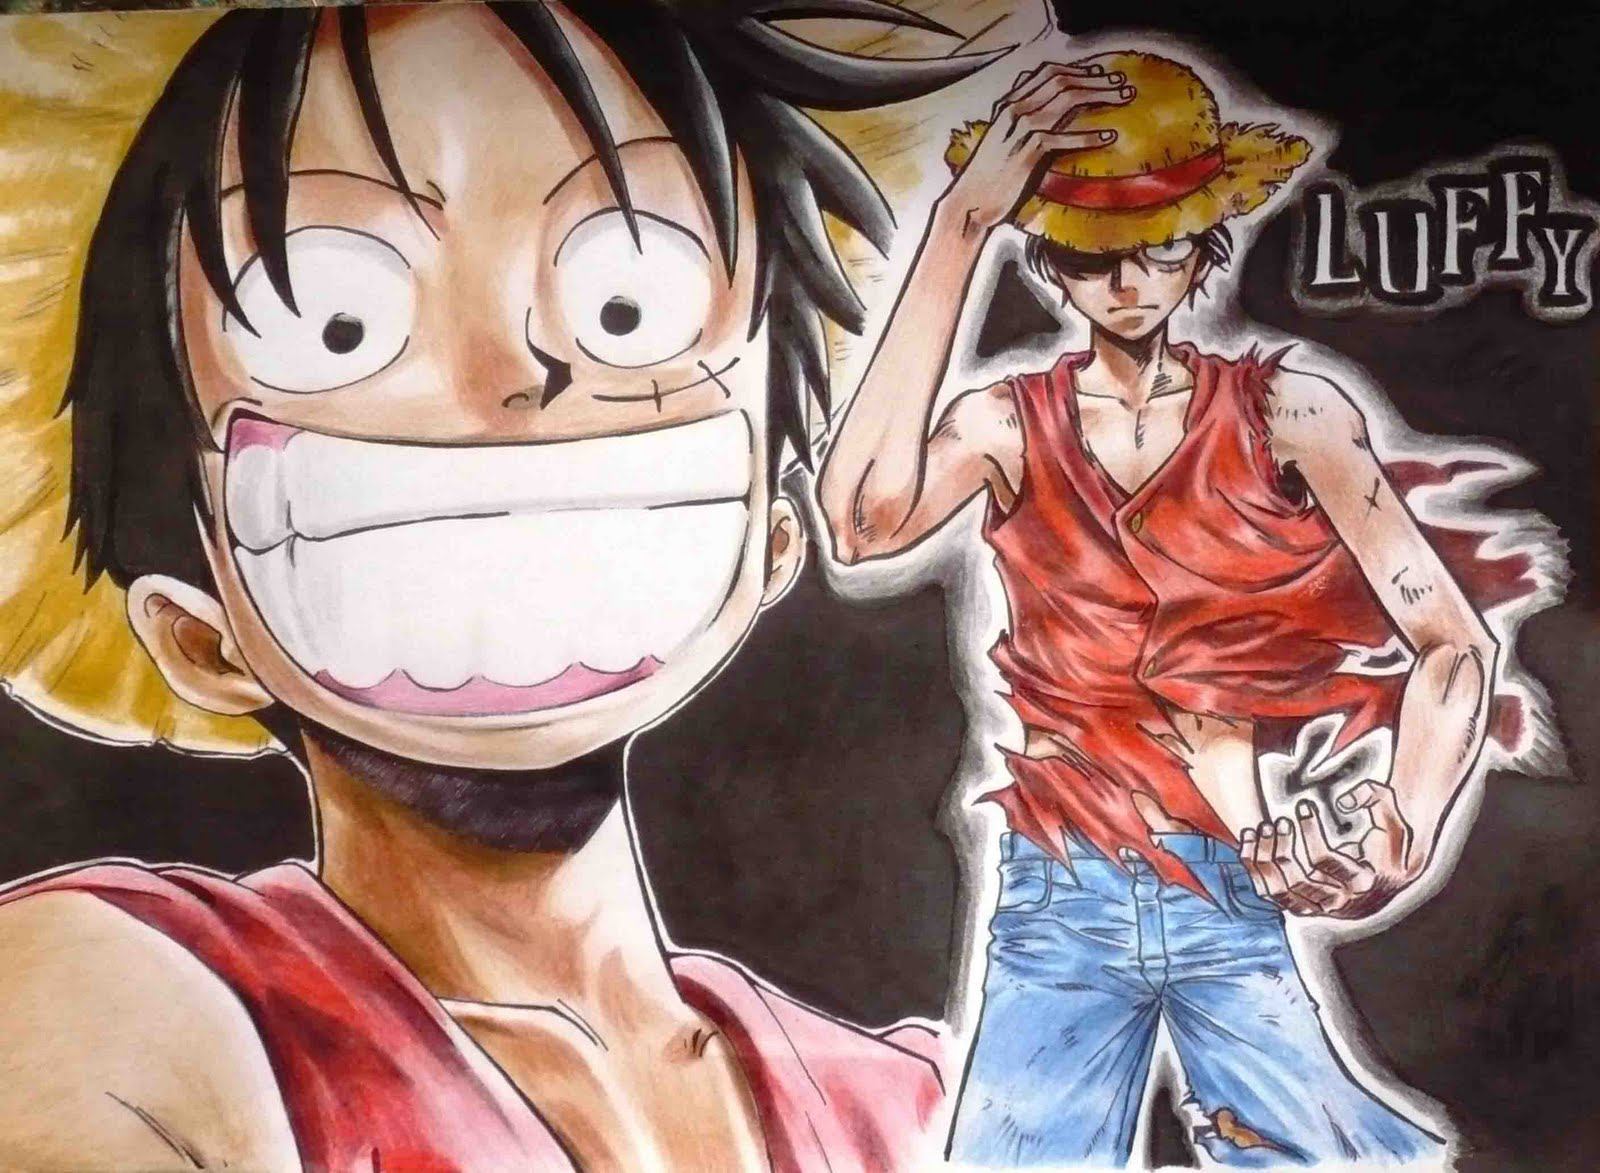 Free Download Wallpaper Luffy One Piece Wallpaper Photo Luffy One Piece Wallpaper 1600x1173 For Your Desktop Mobile Tablet Explore 76 One Piece Wallpaper Luffy One Piece Wallpapers One Piece